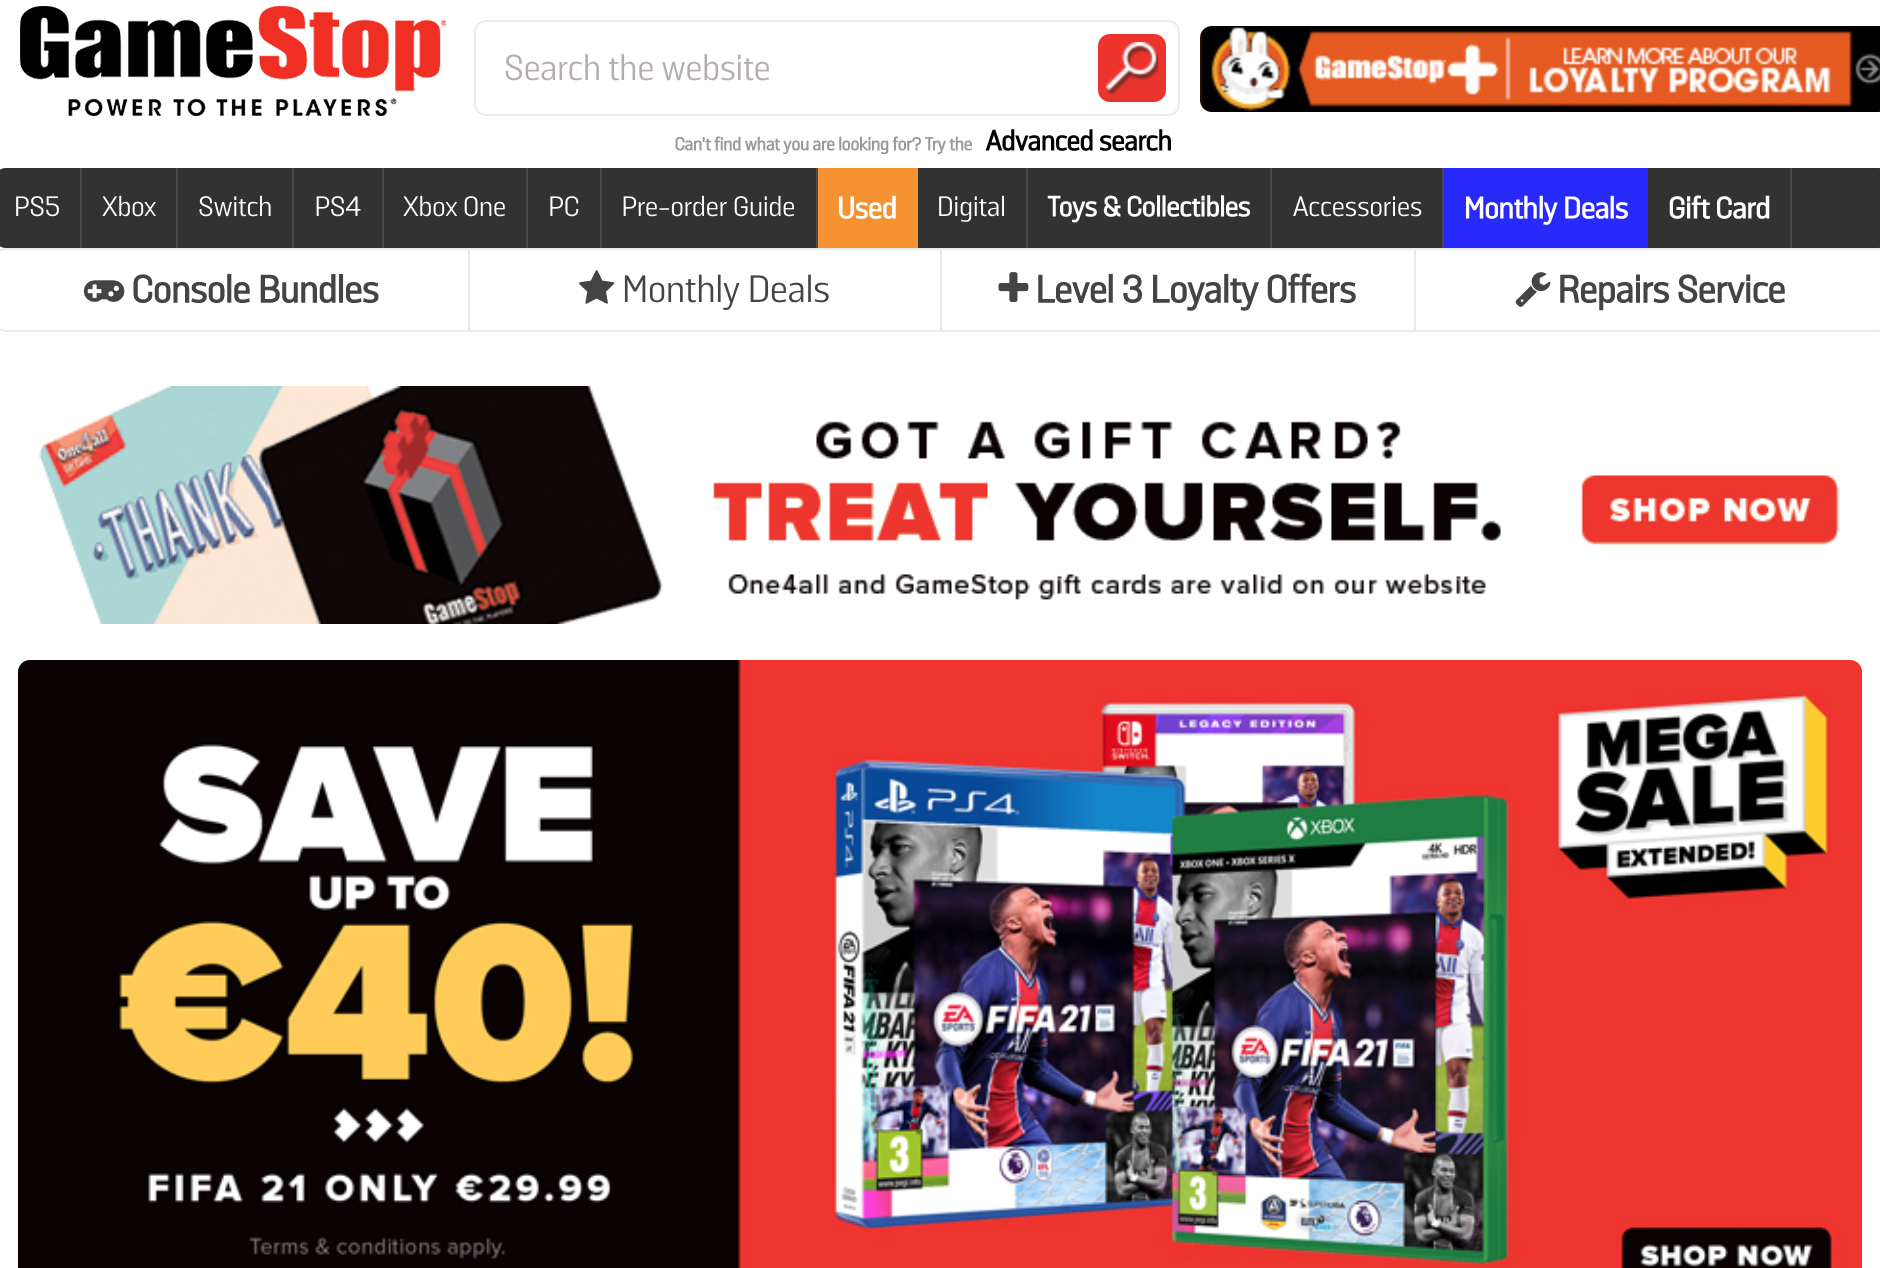 What does GameStop mean for market efficiency?